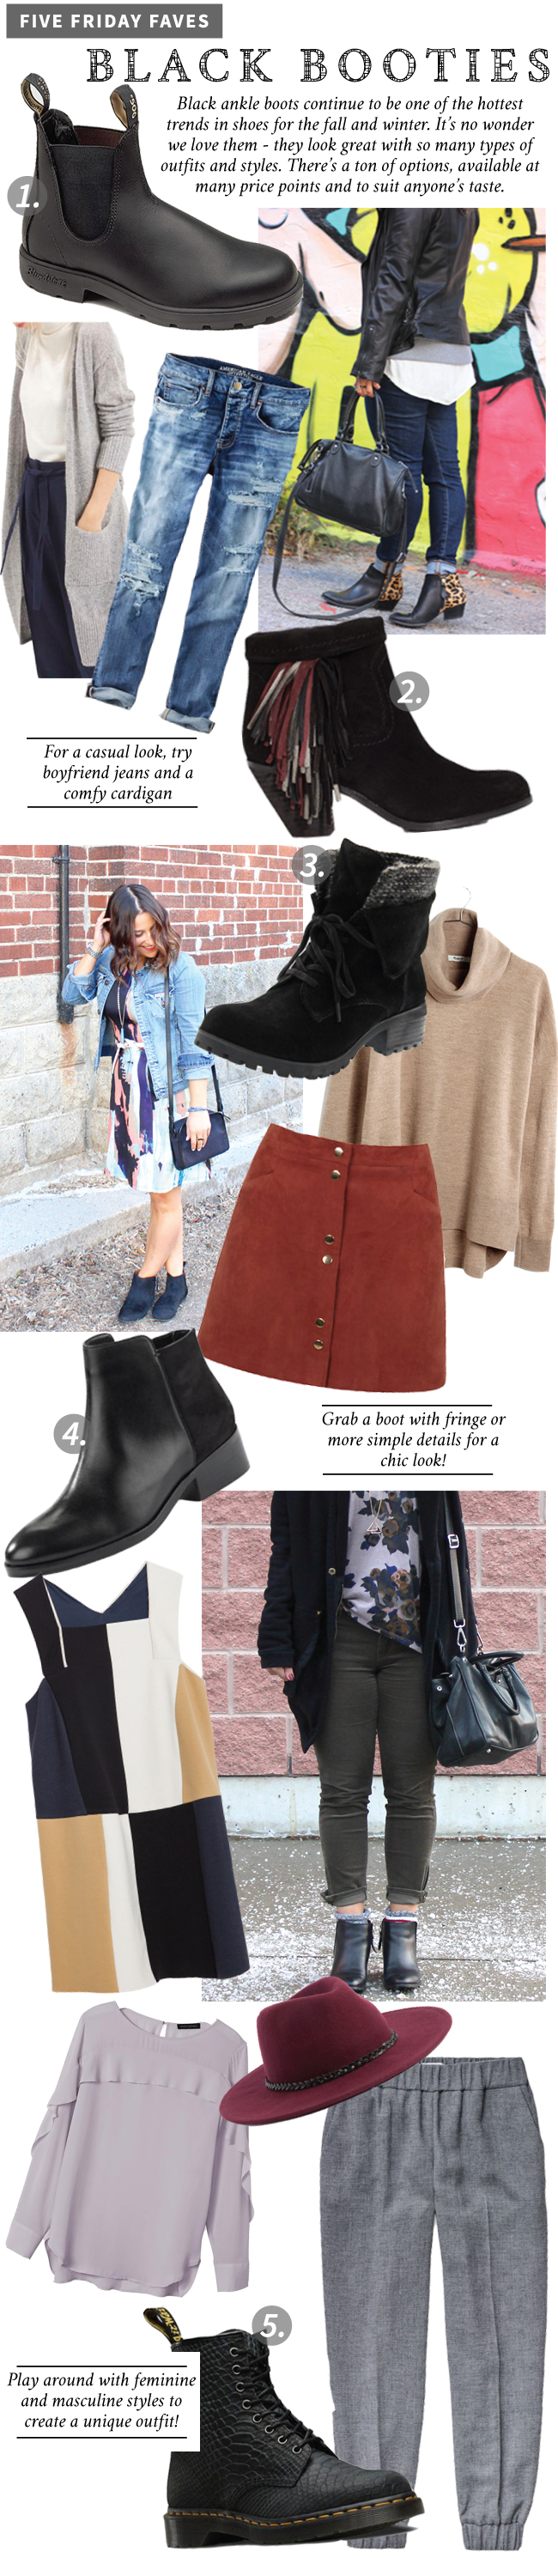 Five Friday Faves - Black Booties